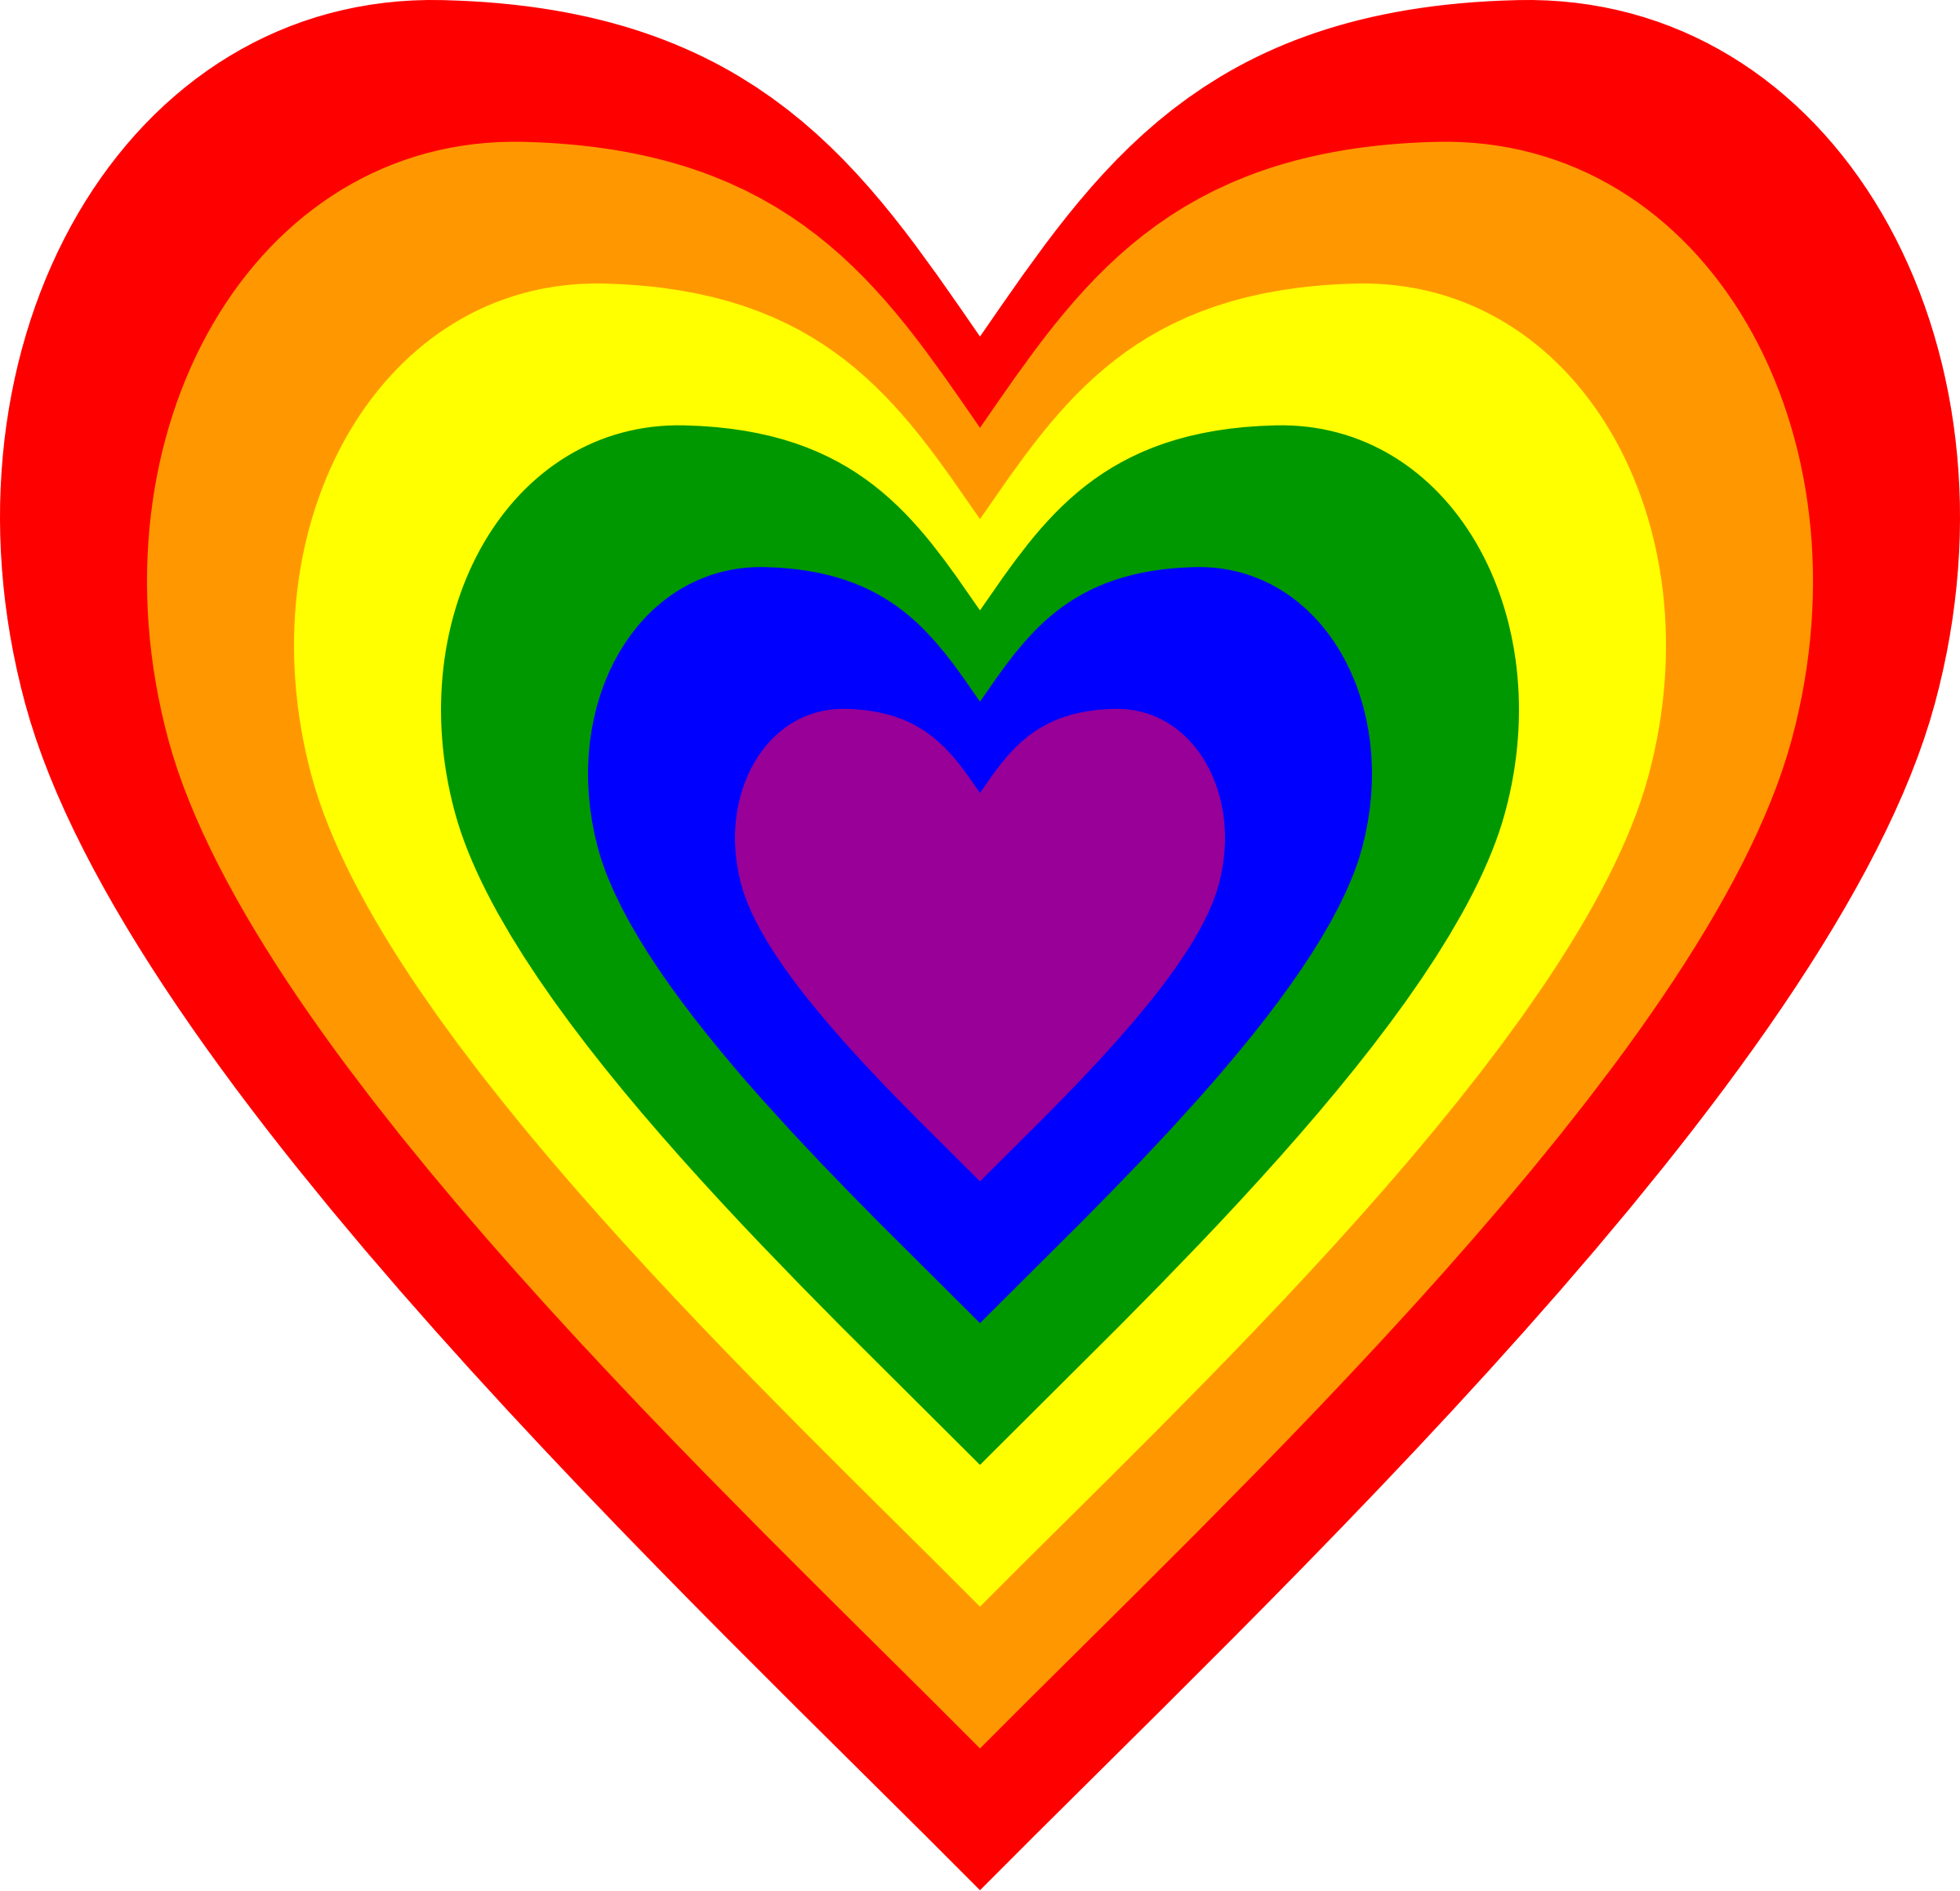 Rainbow heart by Firkin